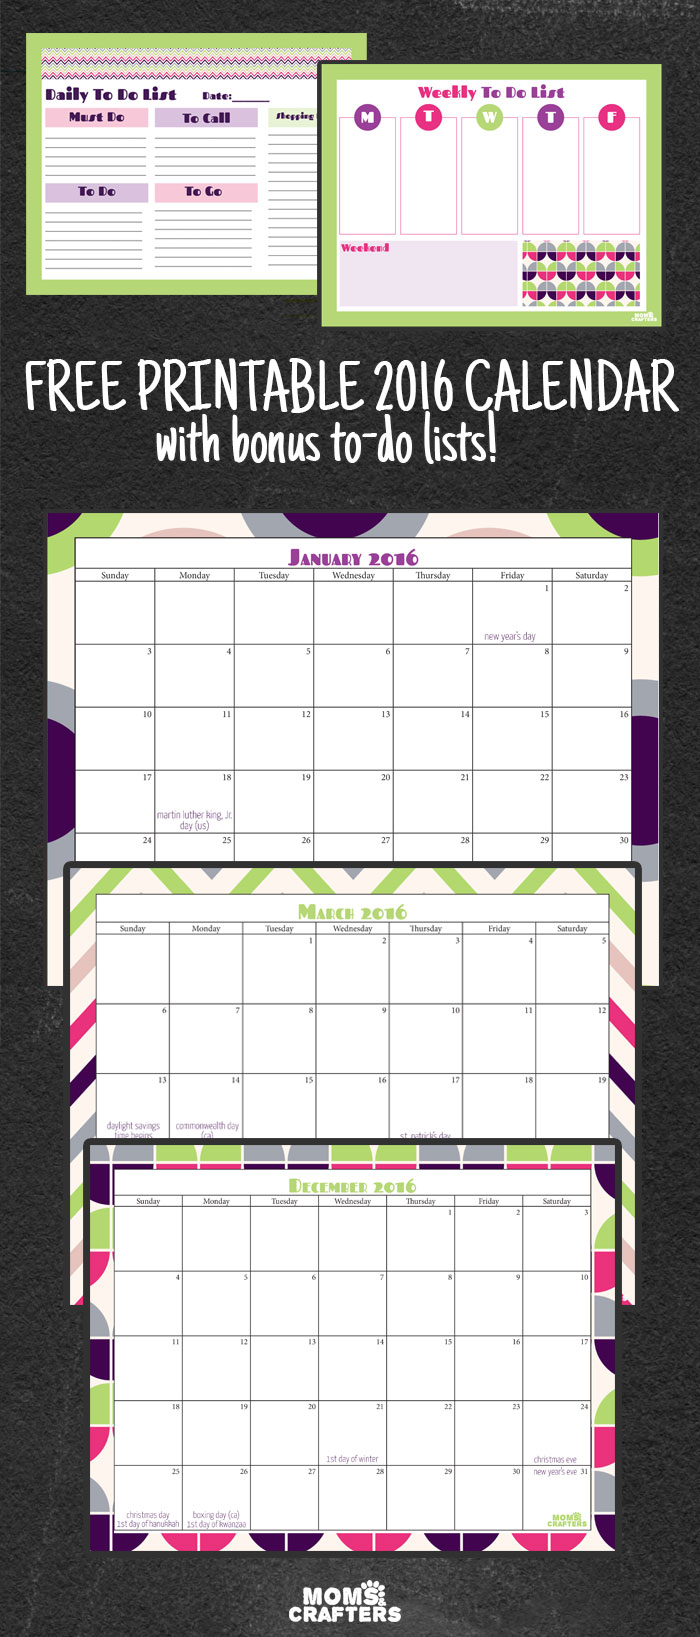 Download this free printable 2016 calendar today! It includes a mini organizer with to do lists too.